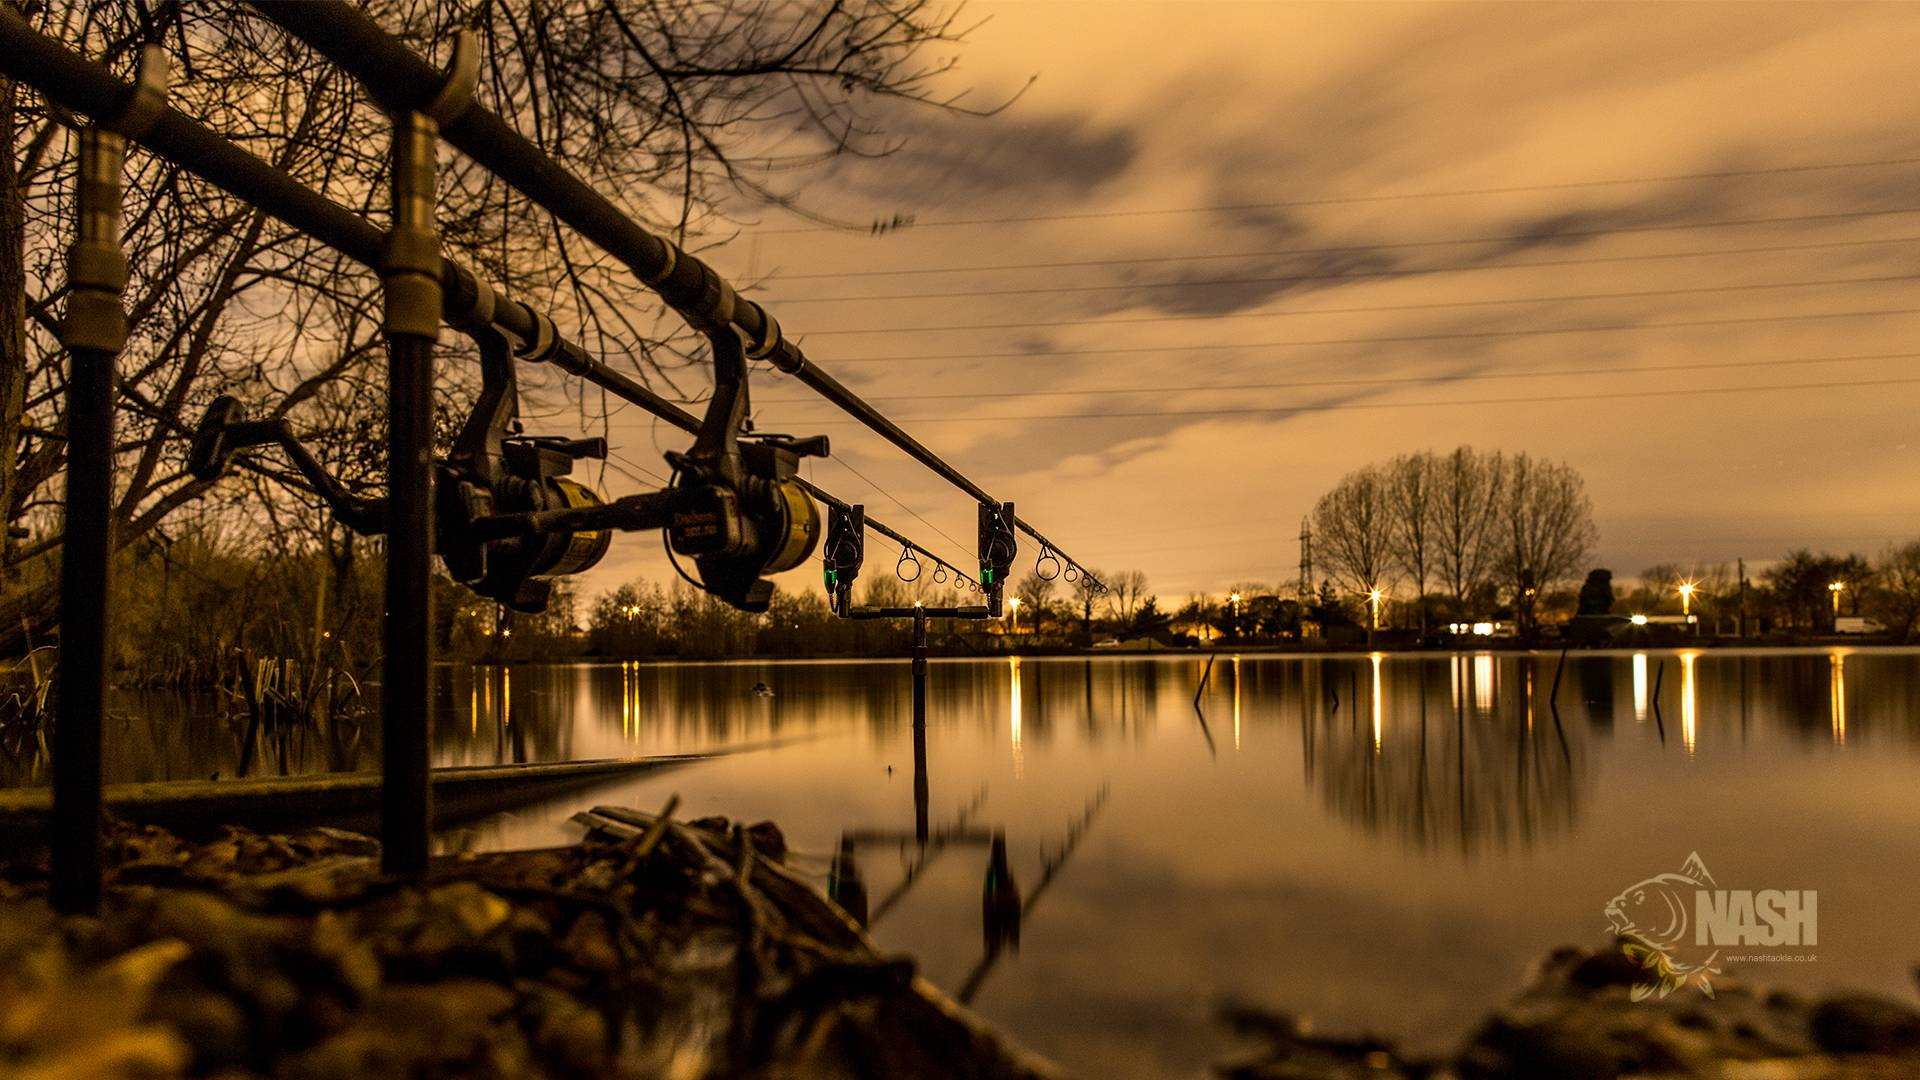 Carpfishing hd wallpapers - Carp fishing wallpaper hd ...